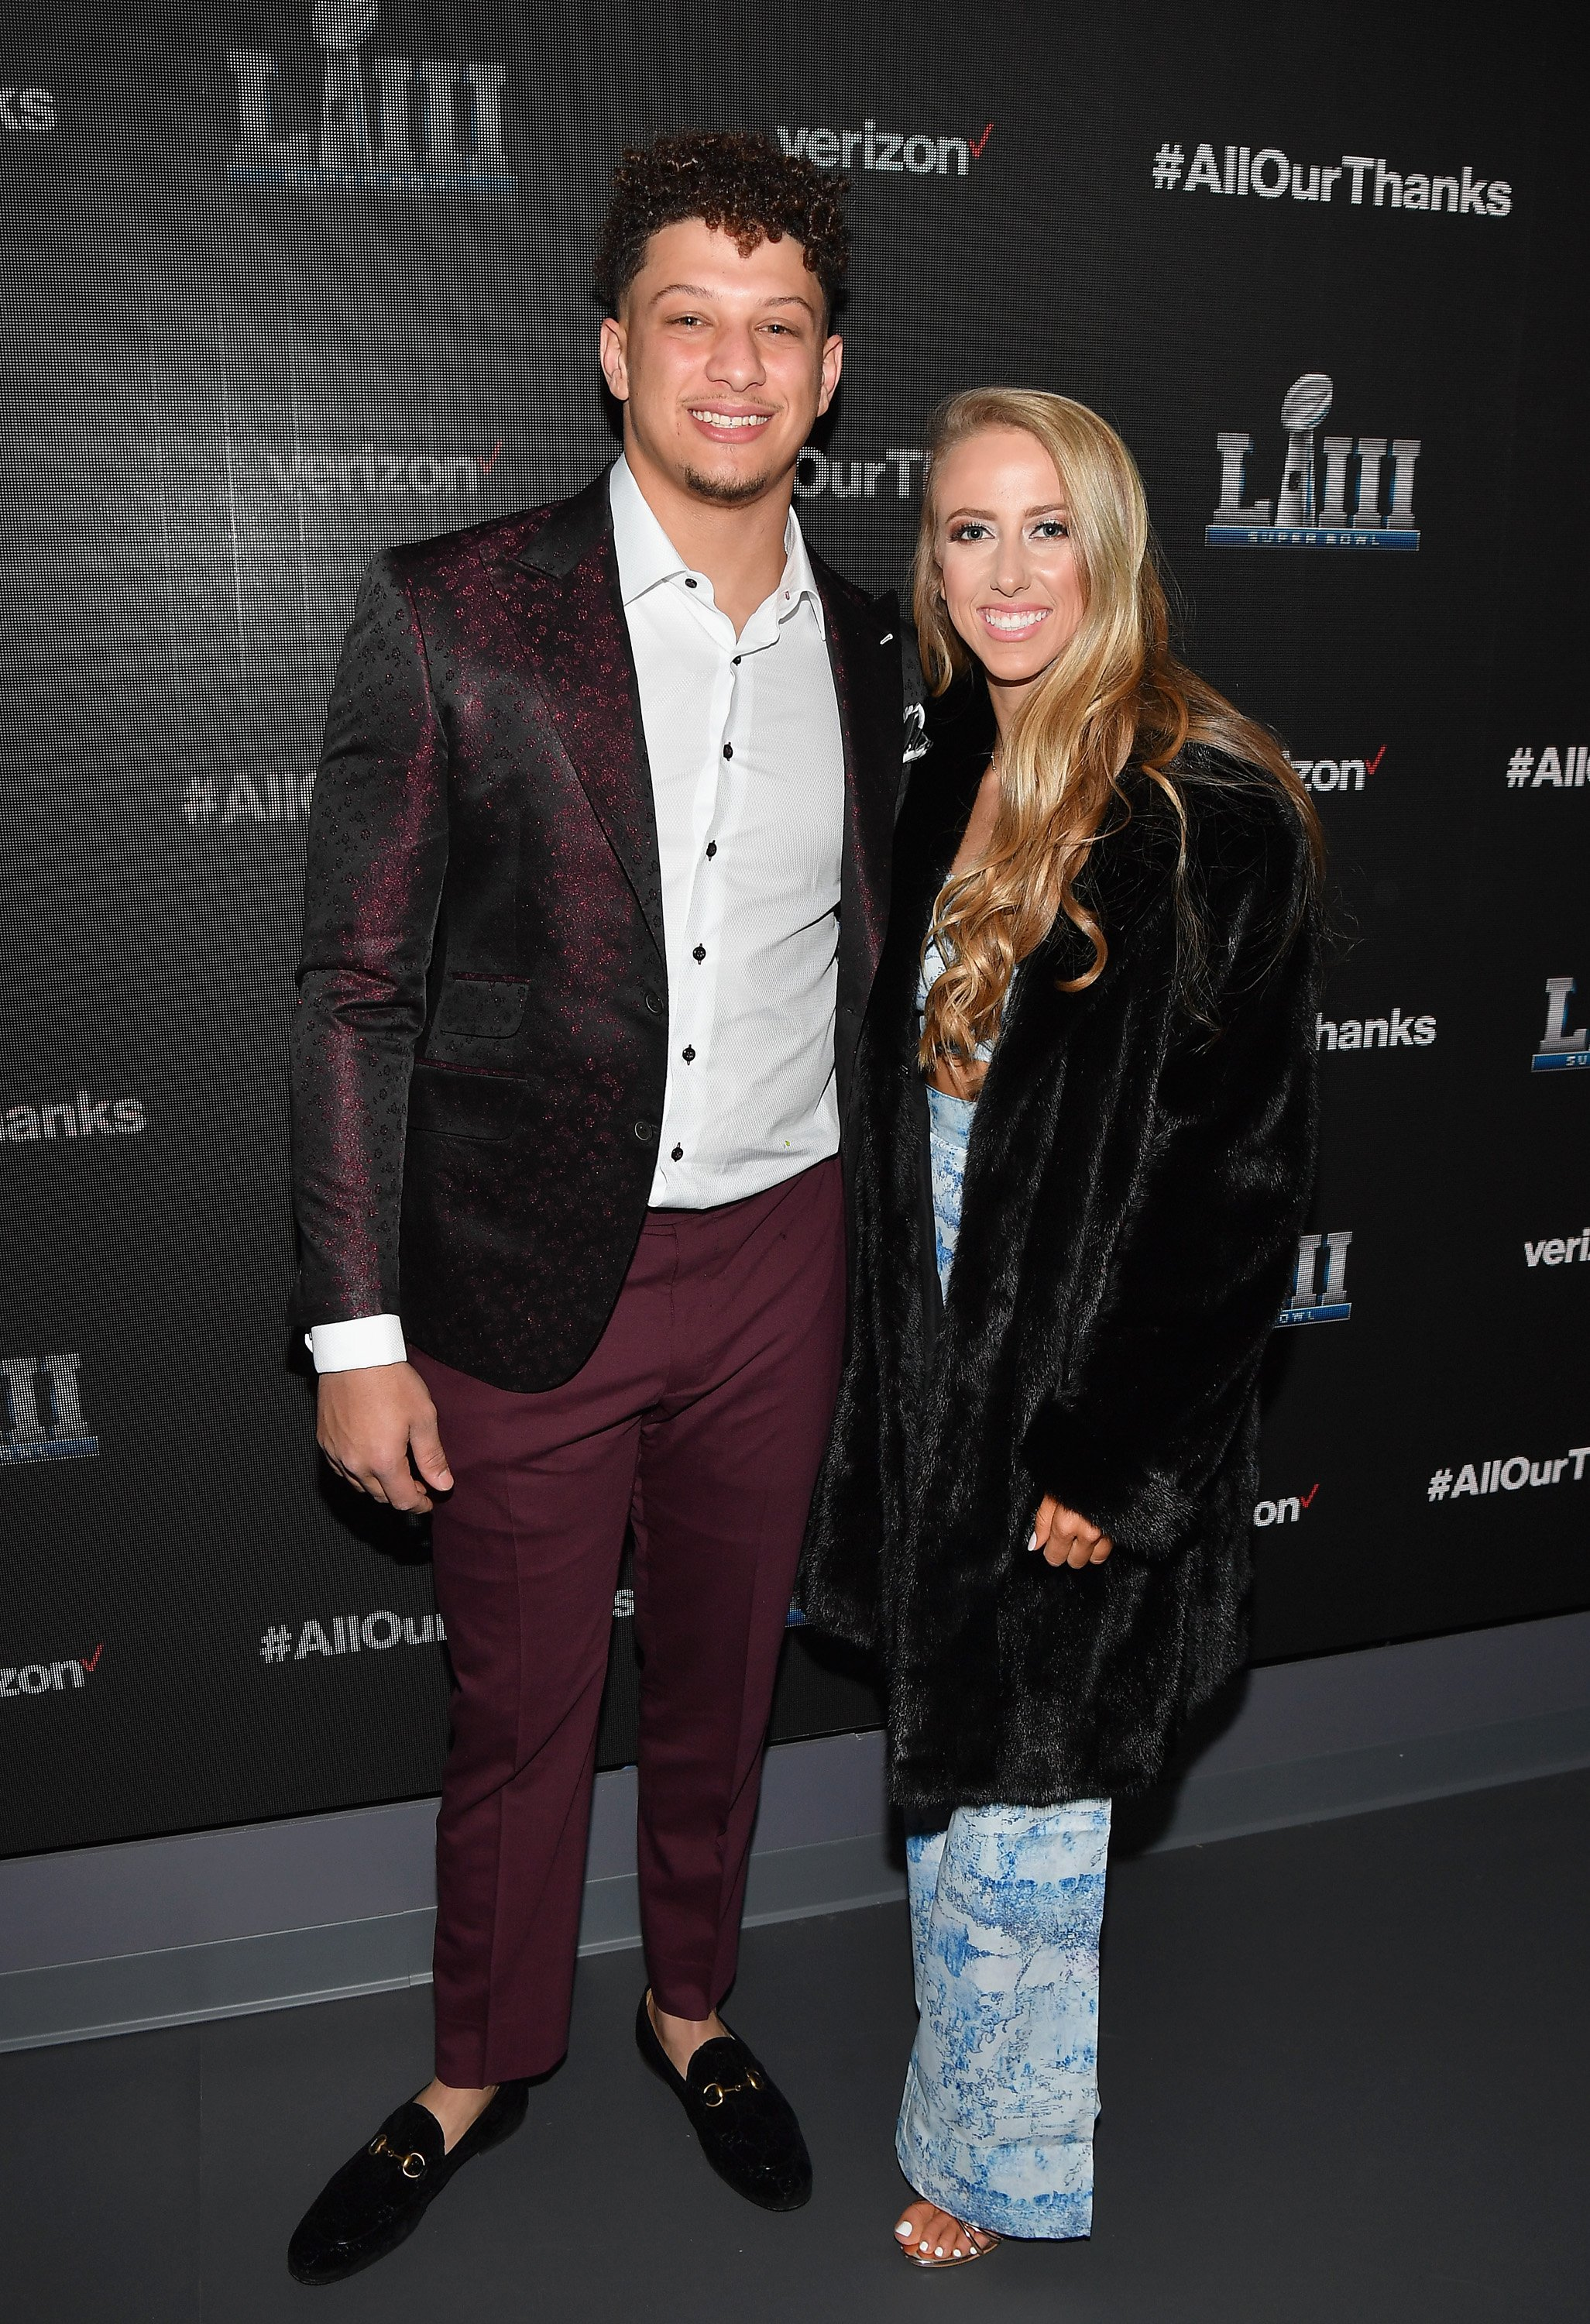 """Patrick Mahomes II and Brittany Matthews attend the world premiere event for """"The Team That Wouldn't Be Here"""" documentary on January 31, 2019 in Atlanta, Georgia 